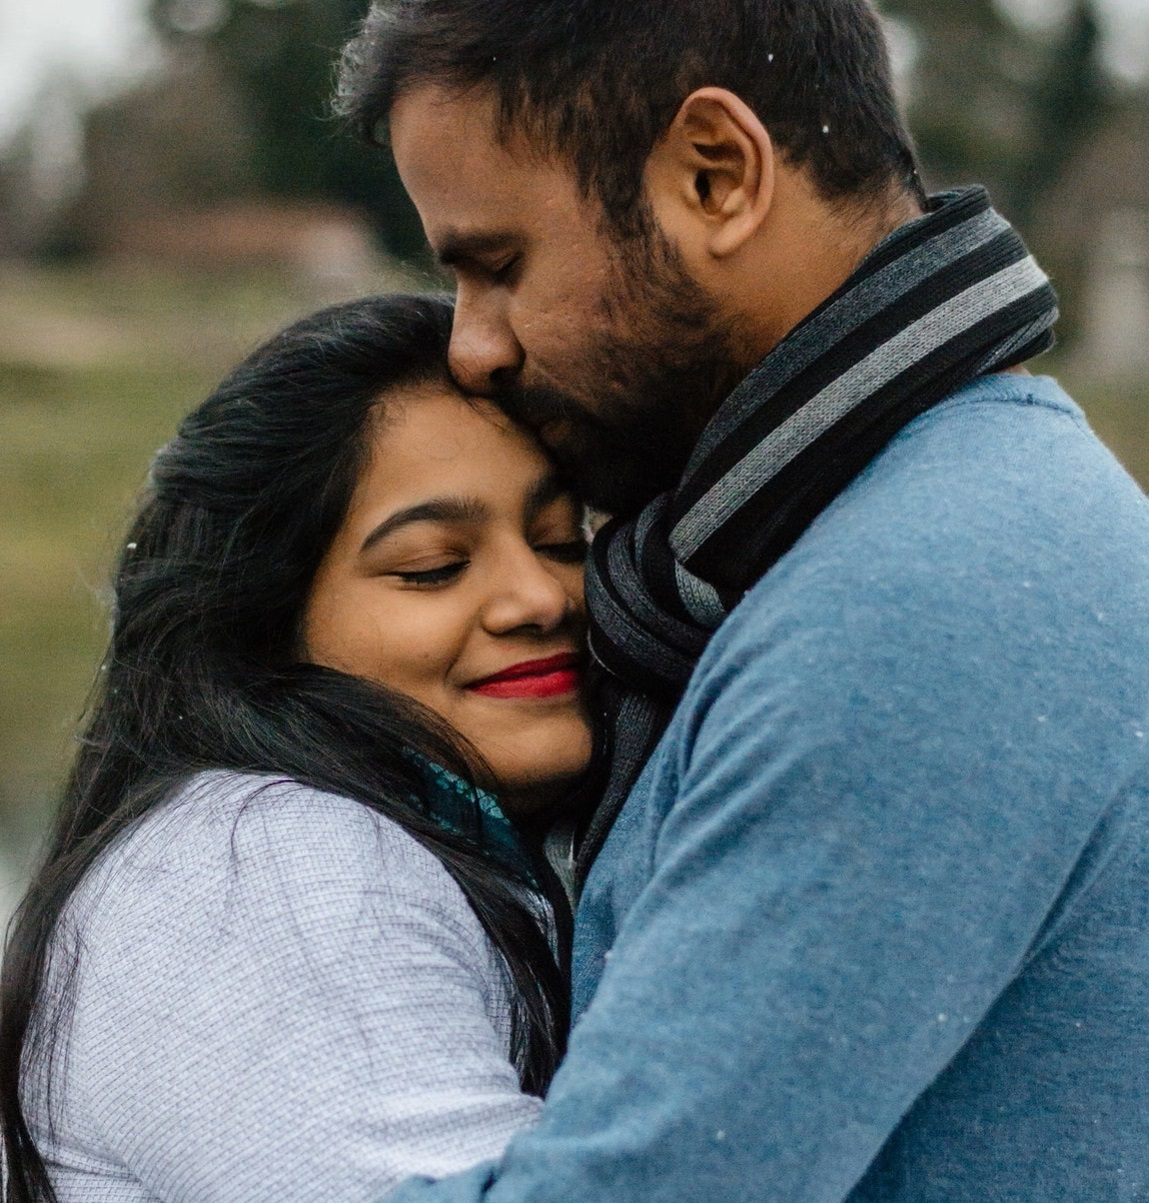 a man and woman hugging one another and smiling